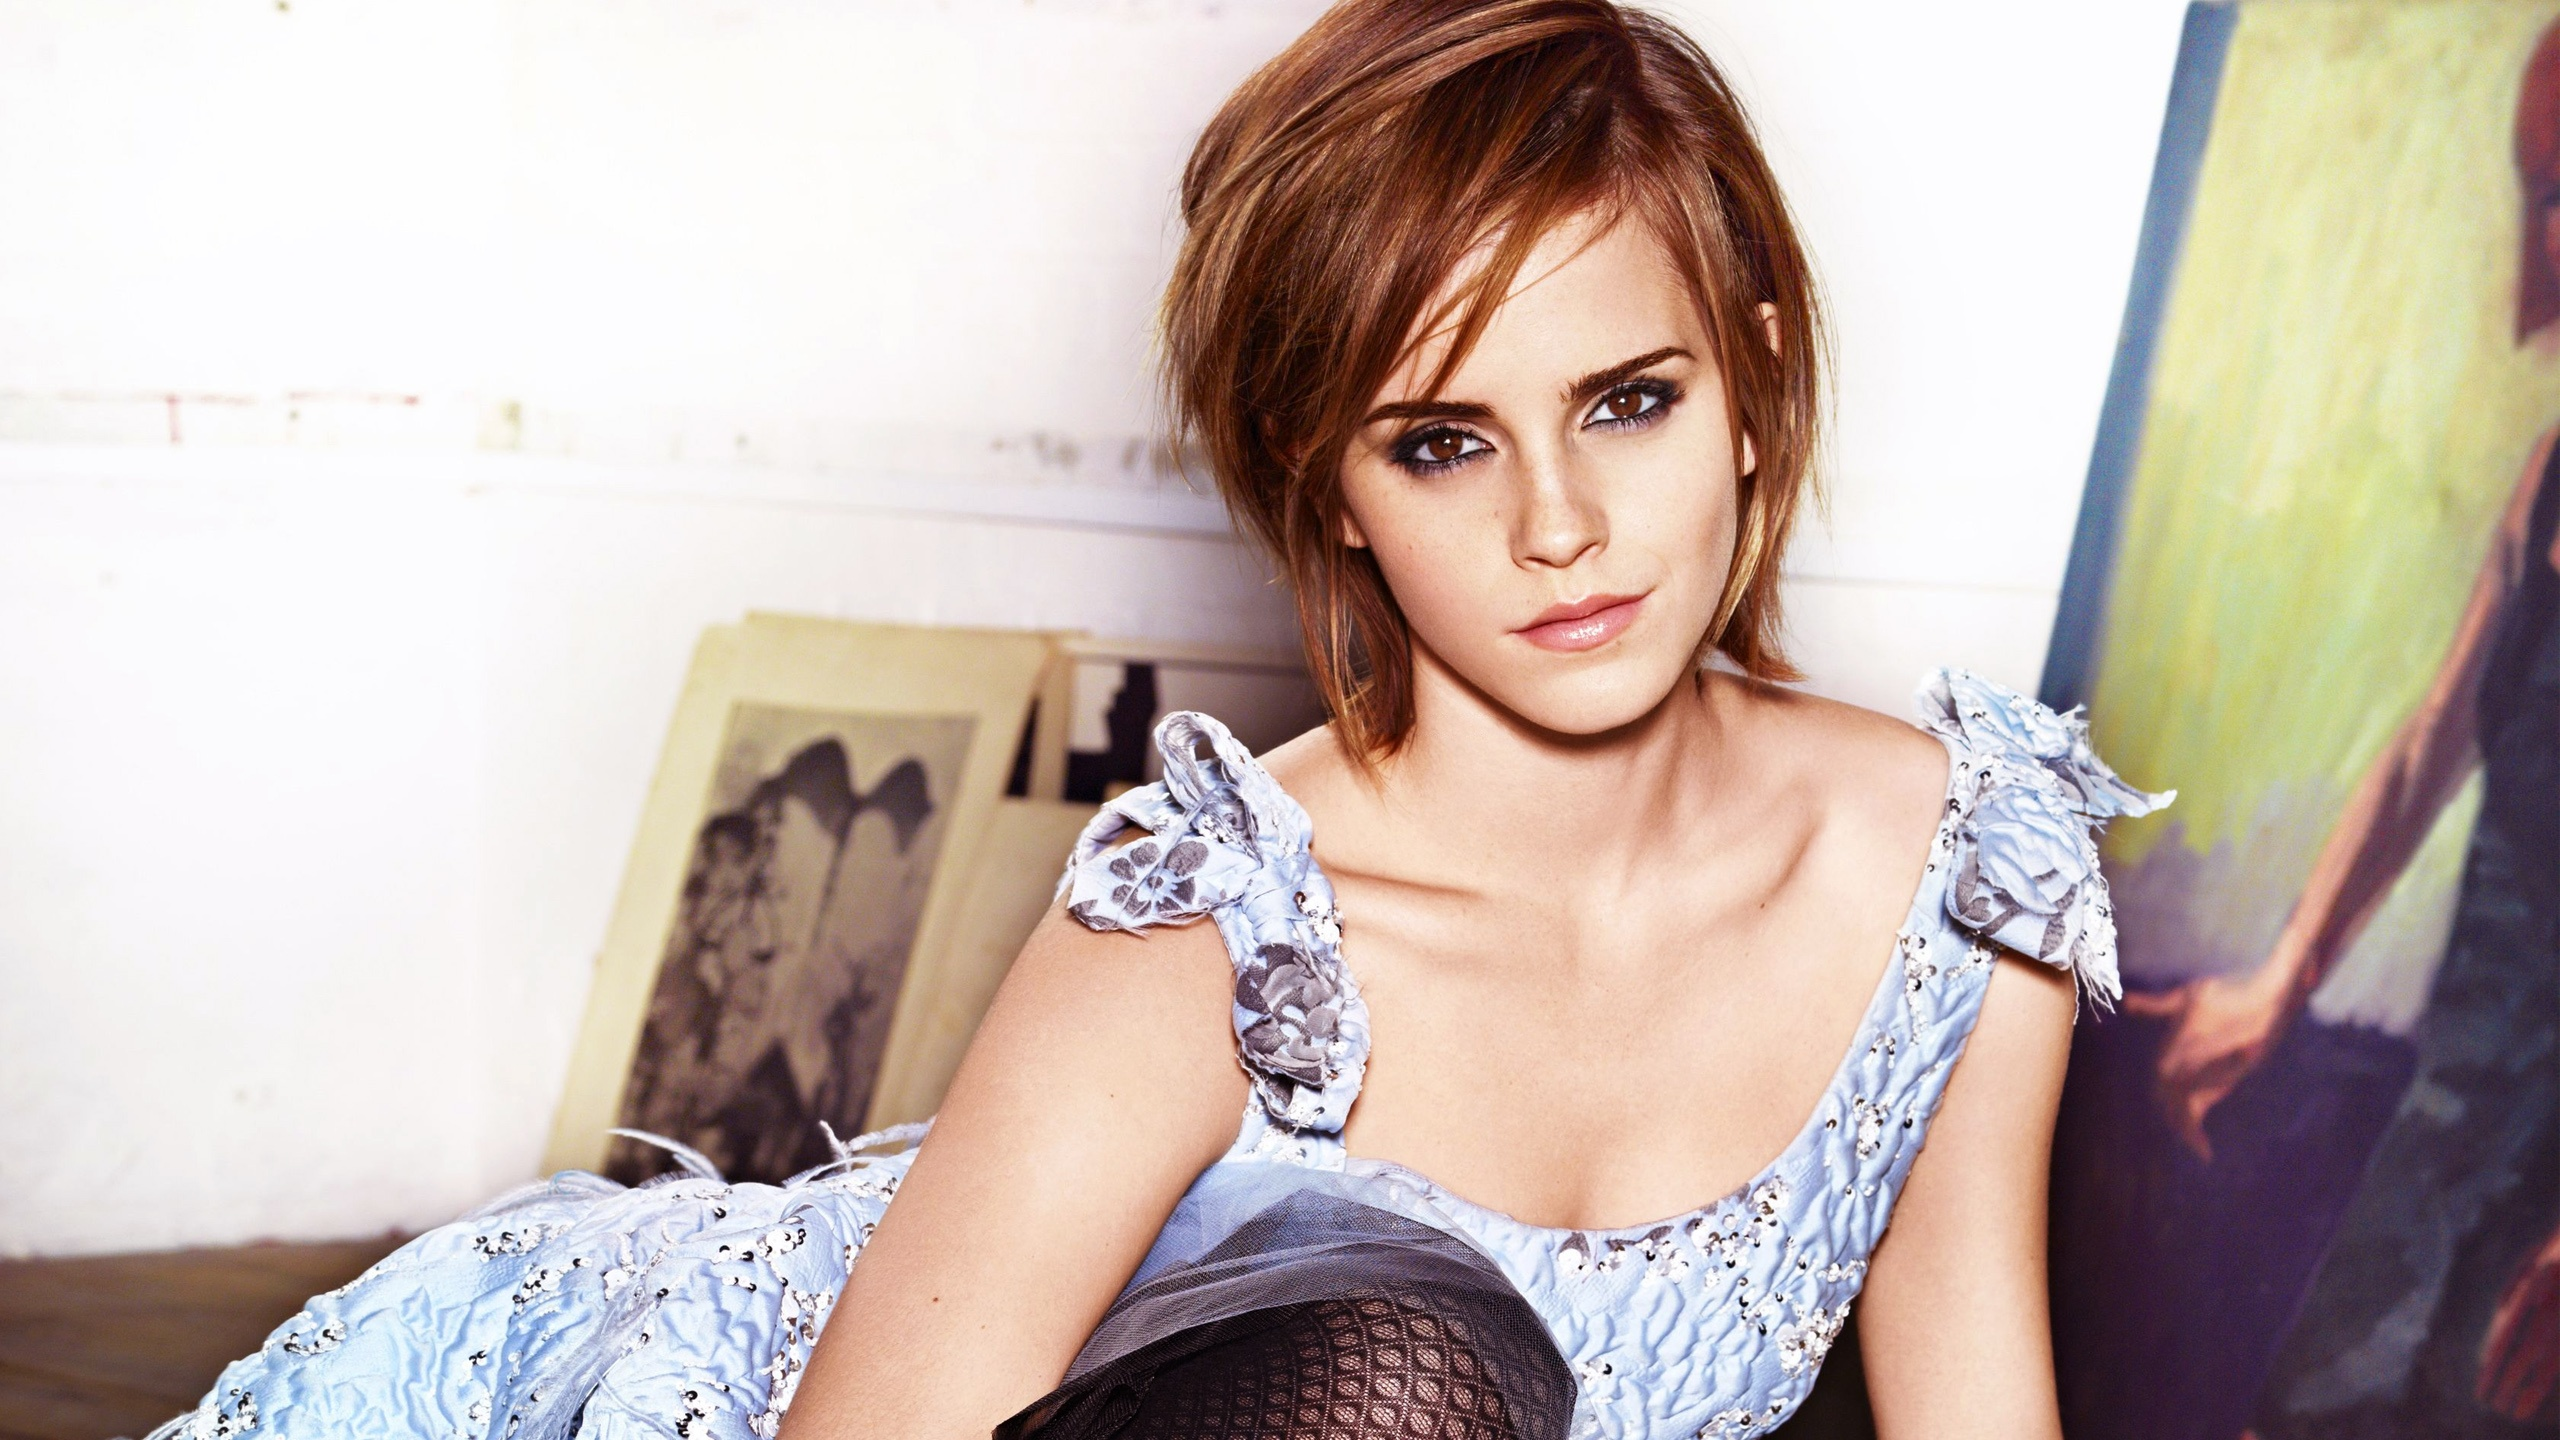 emma watson hot wallpapers in jpg format for free download